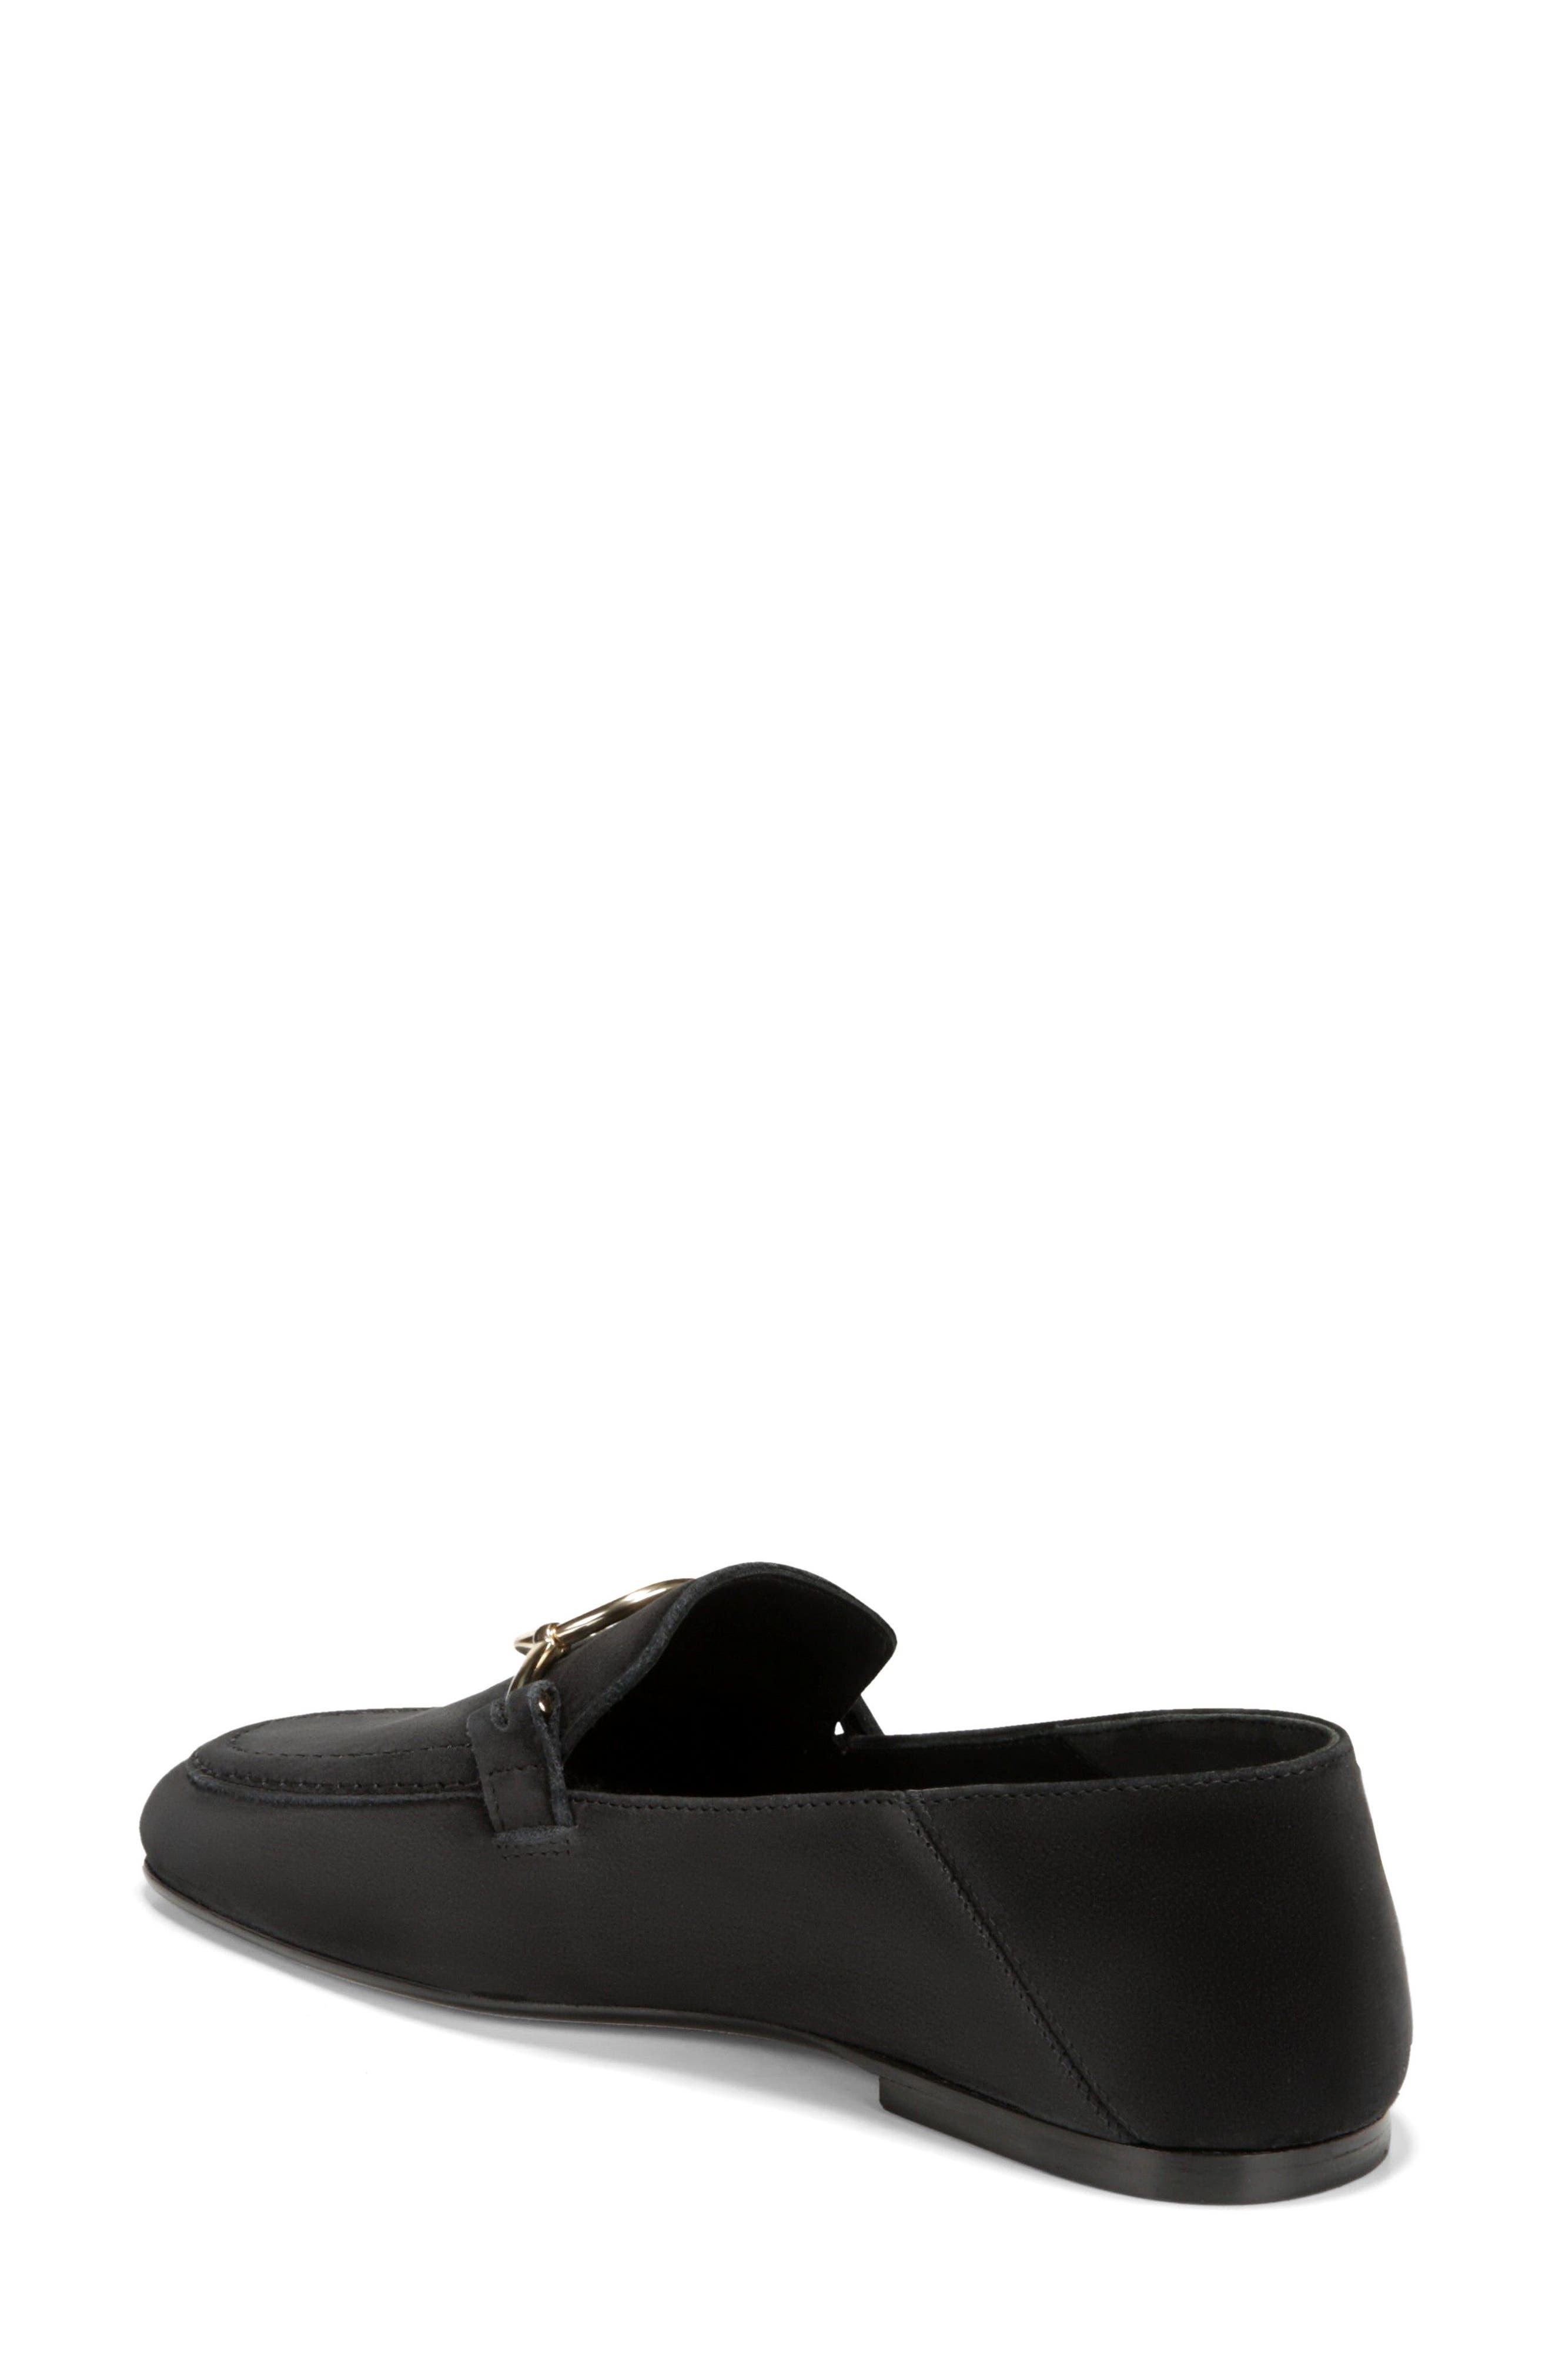 Abby Loafer,                             Alternate thumbnail 2, color,                             BLACK NUBUCK LEATHER